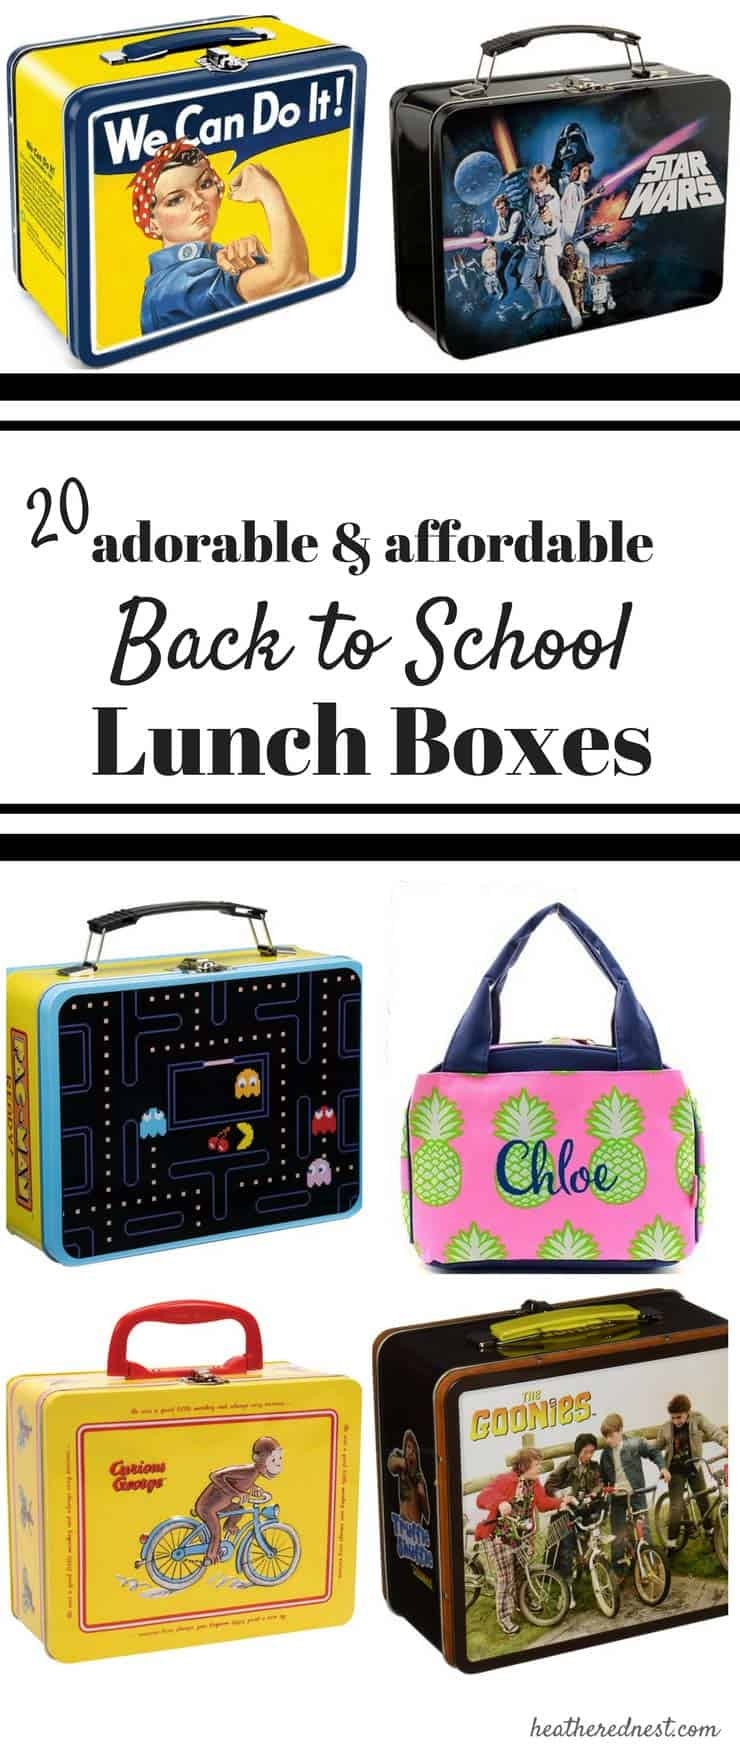 Back to school shopping for affordable lunch boxes? 20 SUPER AFFORDABLE, FUN LUNCHBOX OPTIONS!!